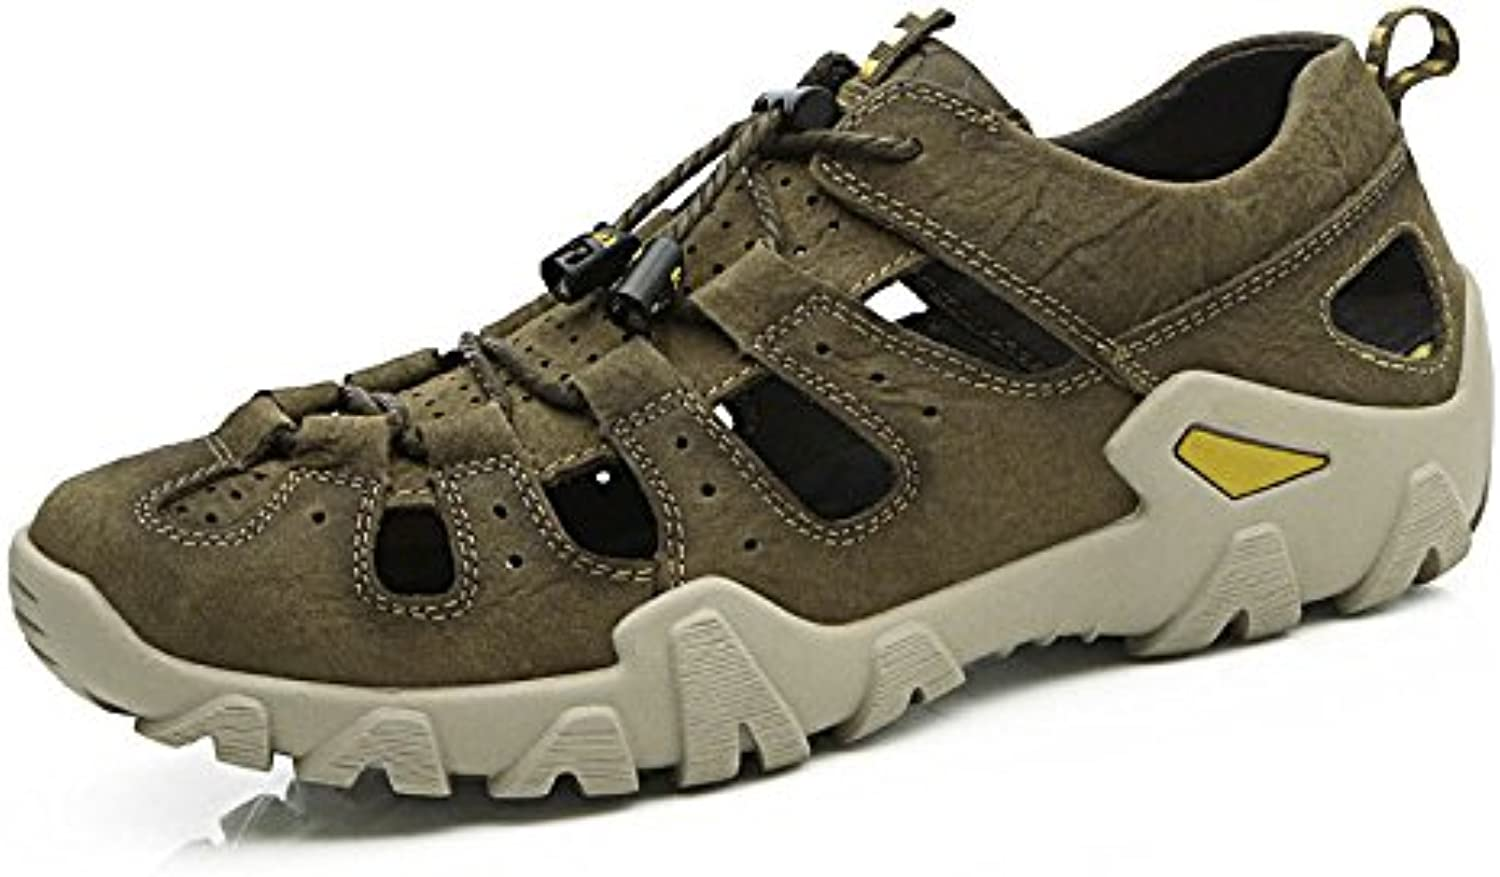 Herren Sandalen Strand Schuhe Fashion Outdoors Herrenschuhe Khaki 43Sandalen Fashion Outdoors Herrenschuhe Khaki 43 Billig und erschwinglich Im Verkauf